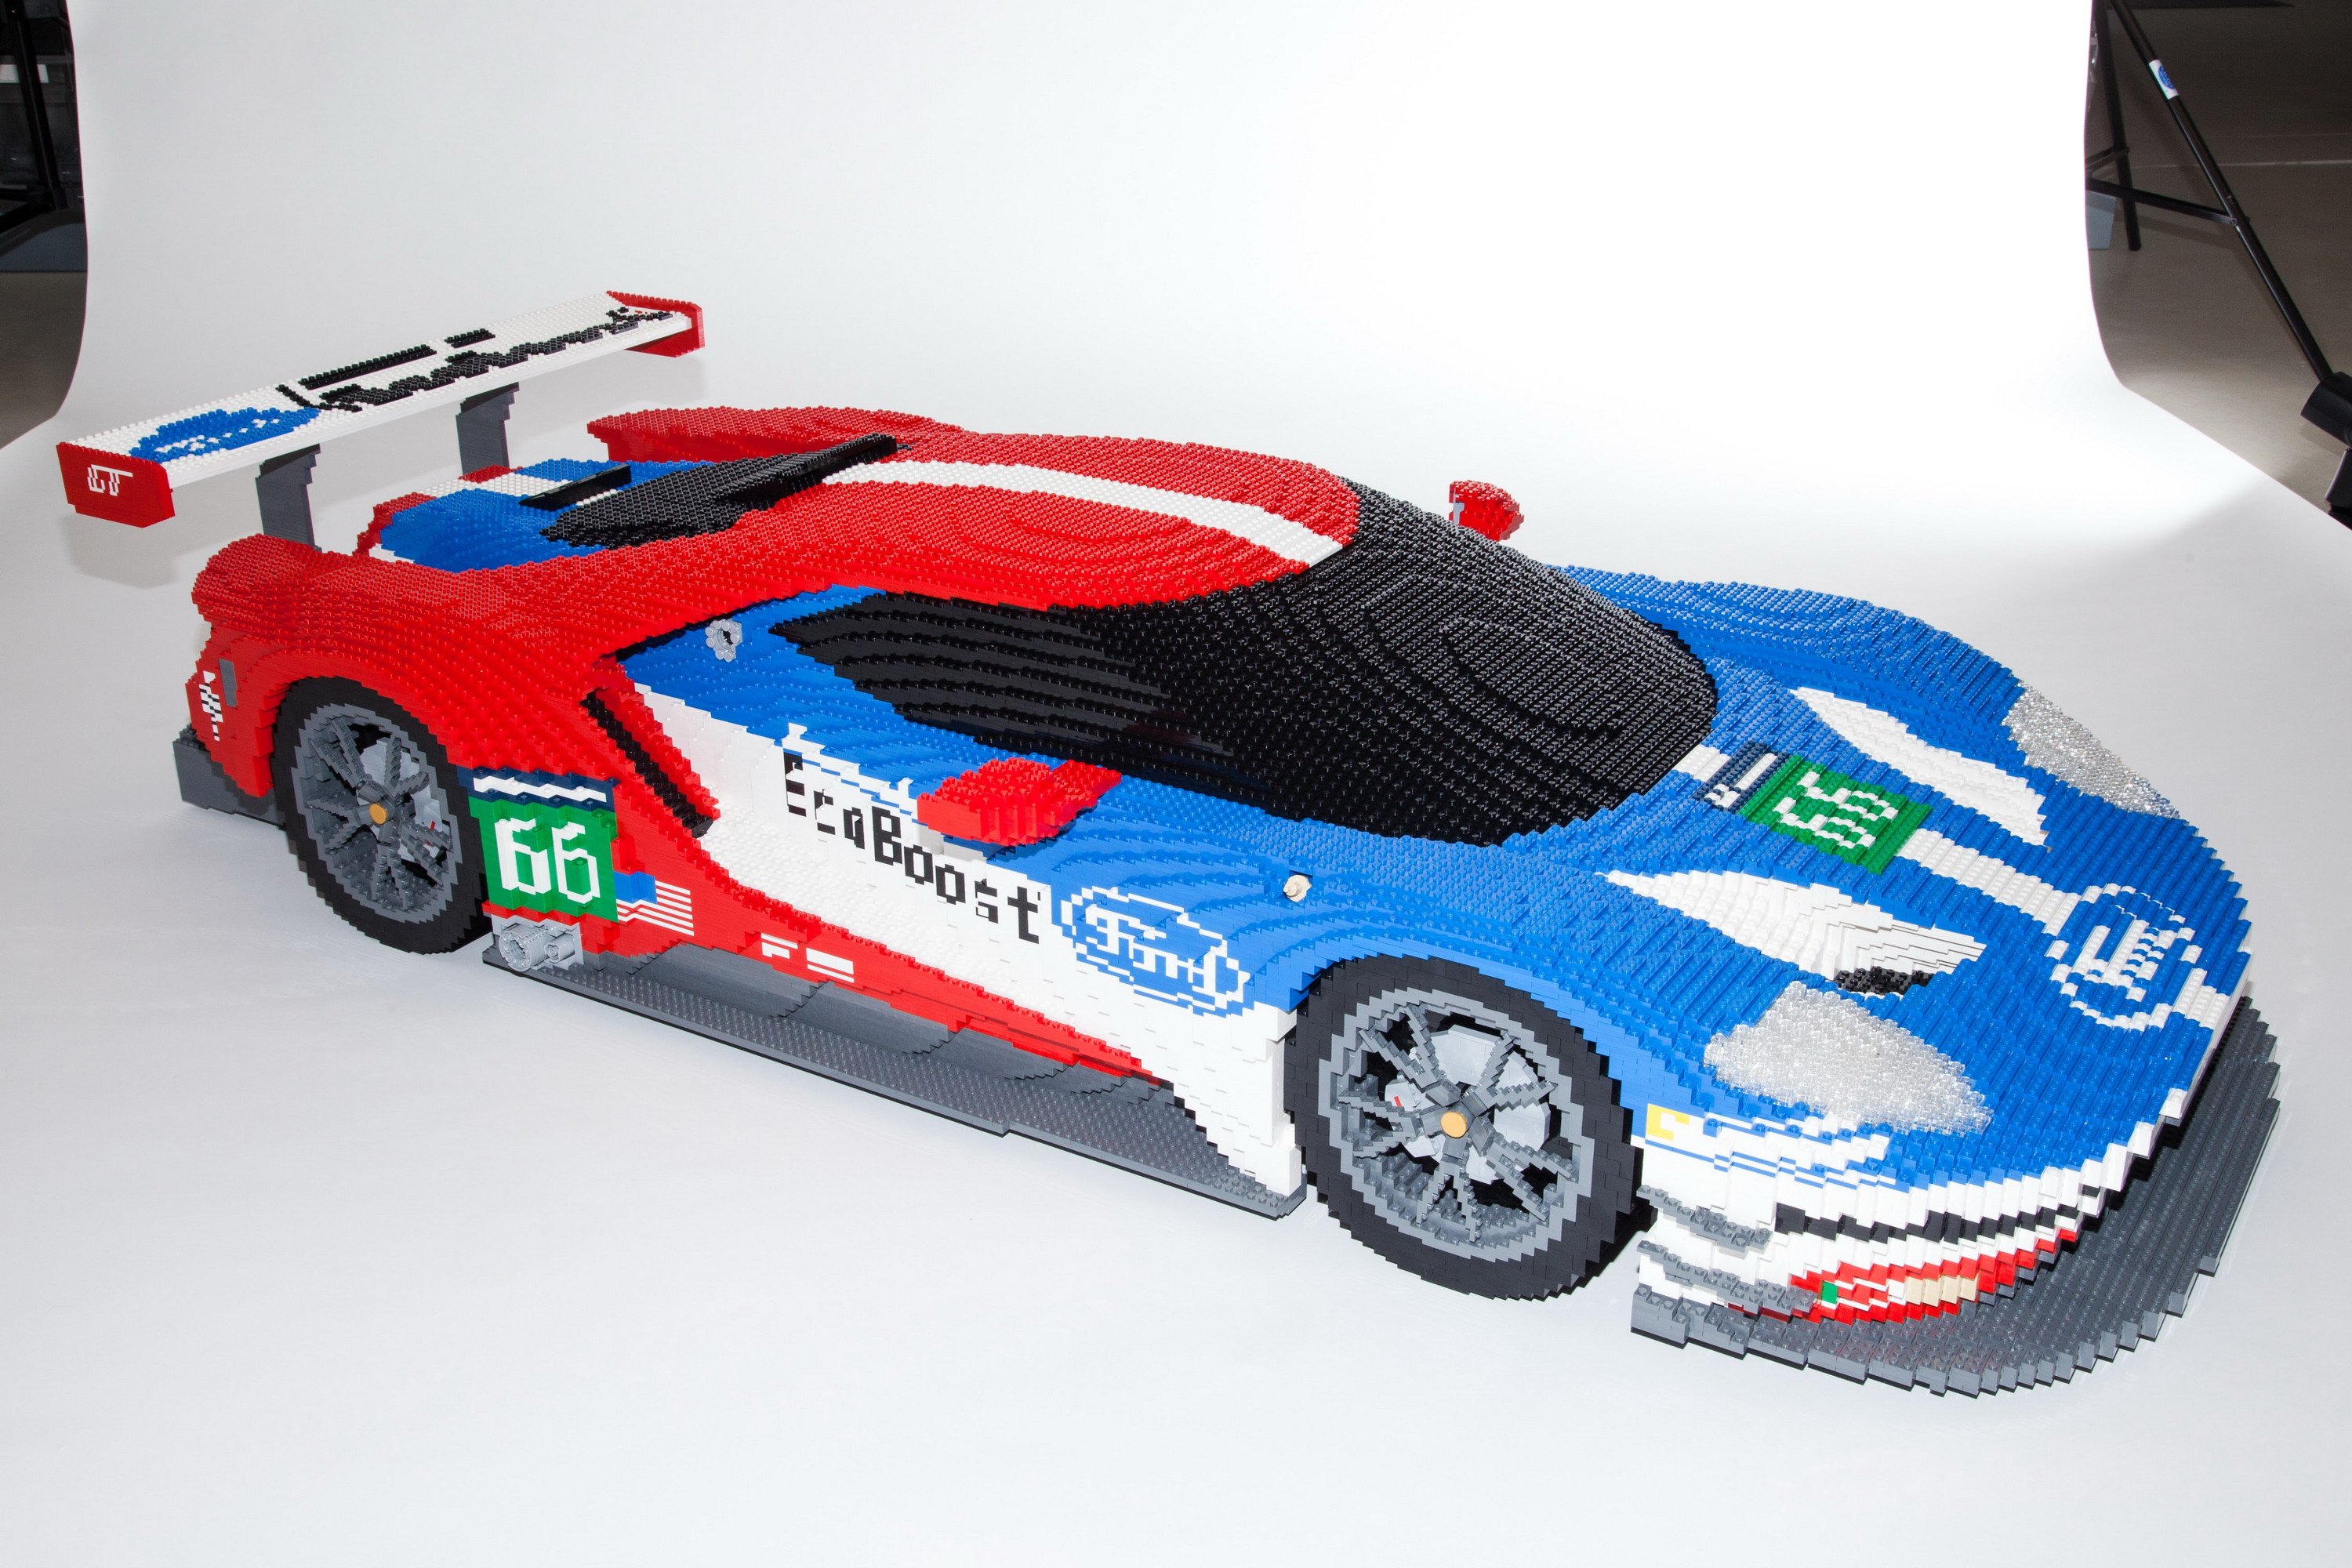 Lego Version Of Ford Gt Race Car To Be Displayed At Lemans Video